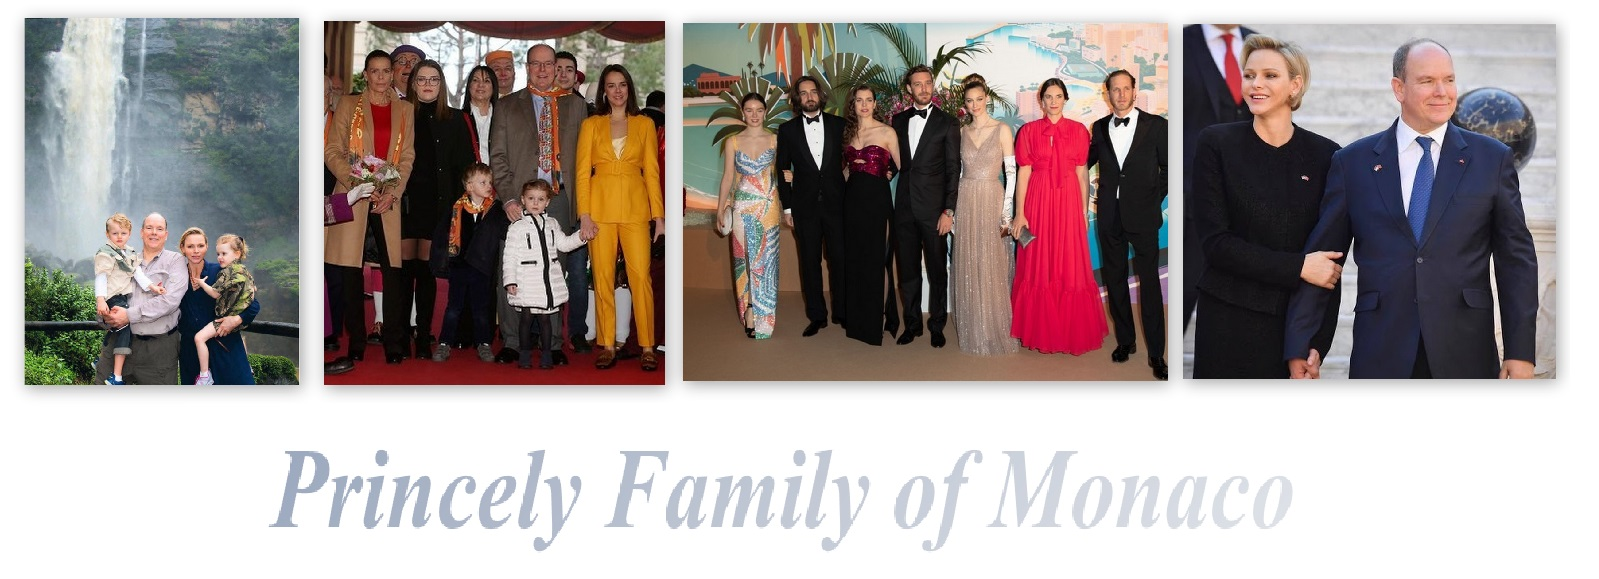 Princely Family of Monaco